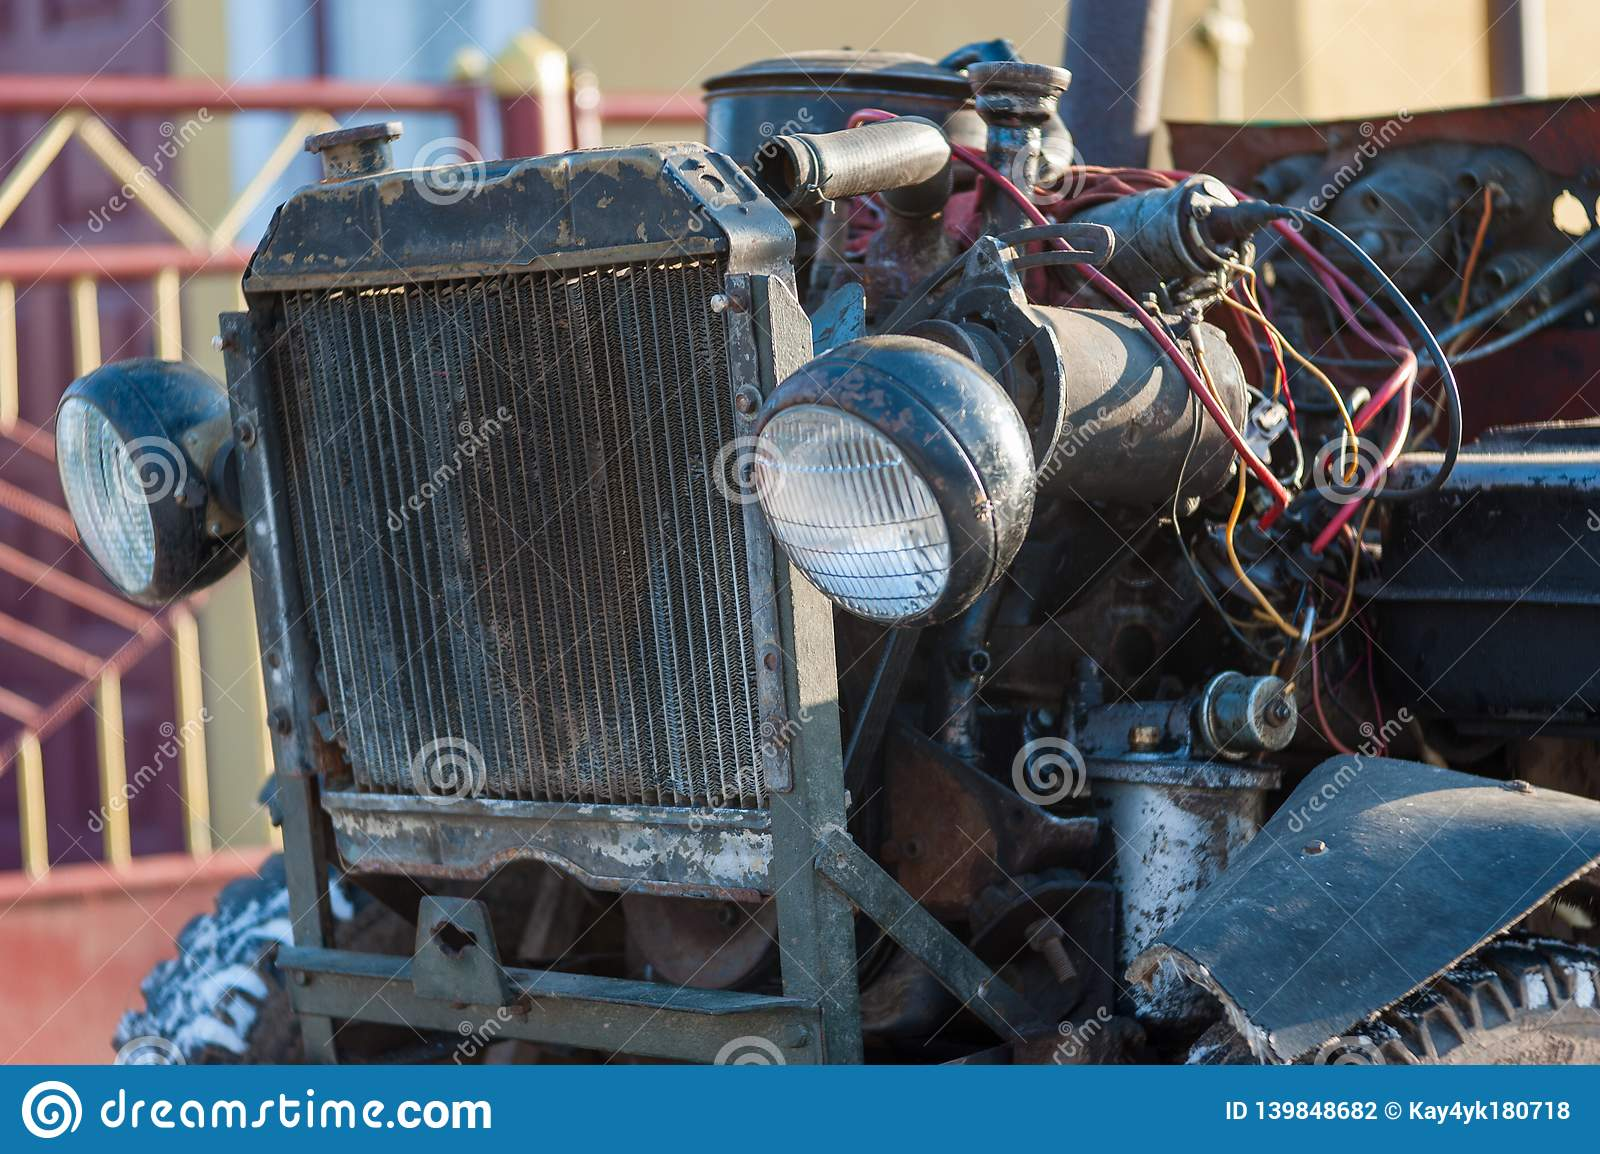 Old car needs repair and wiring diagnostics